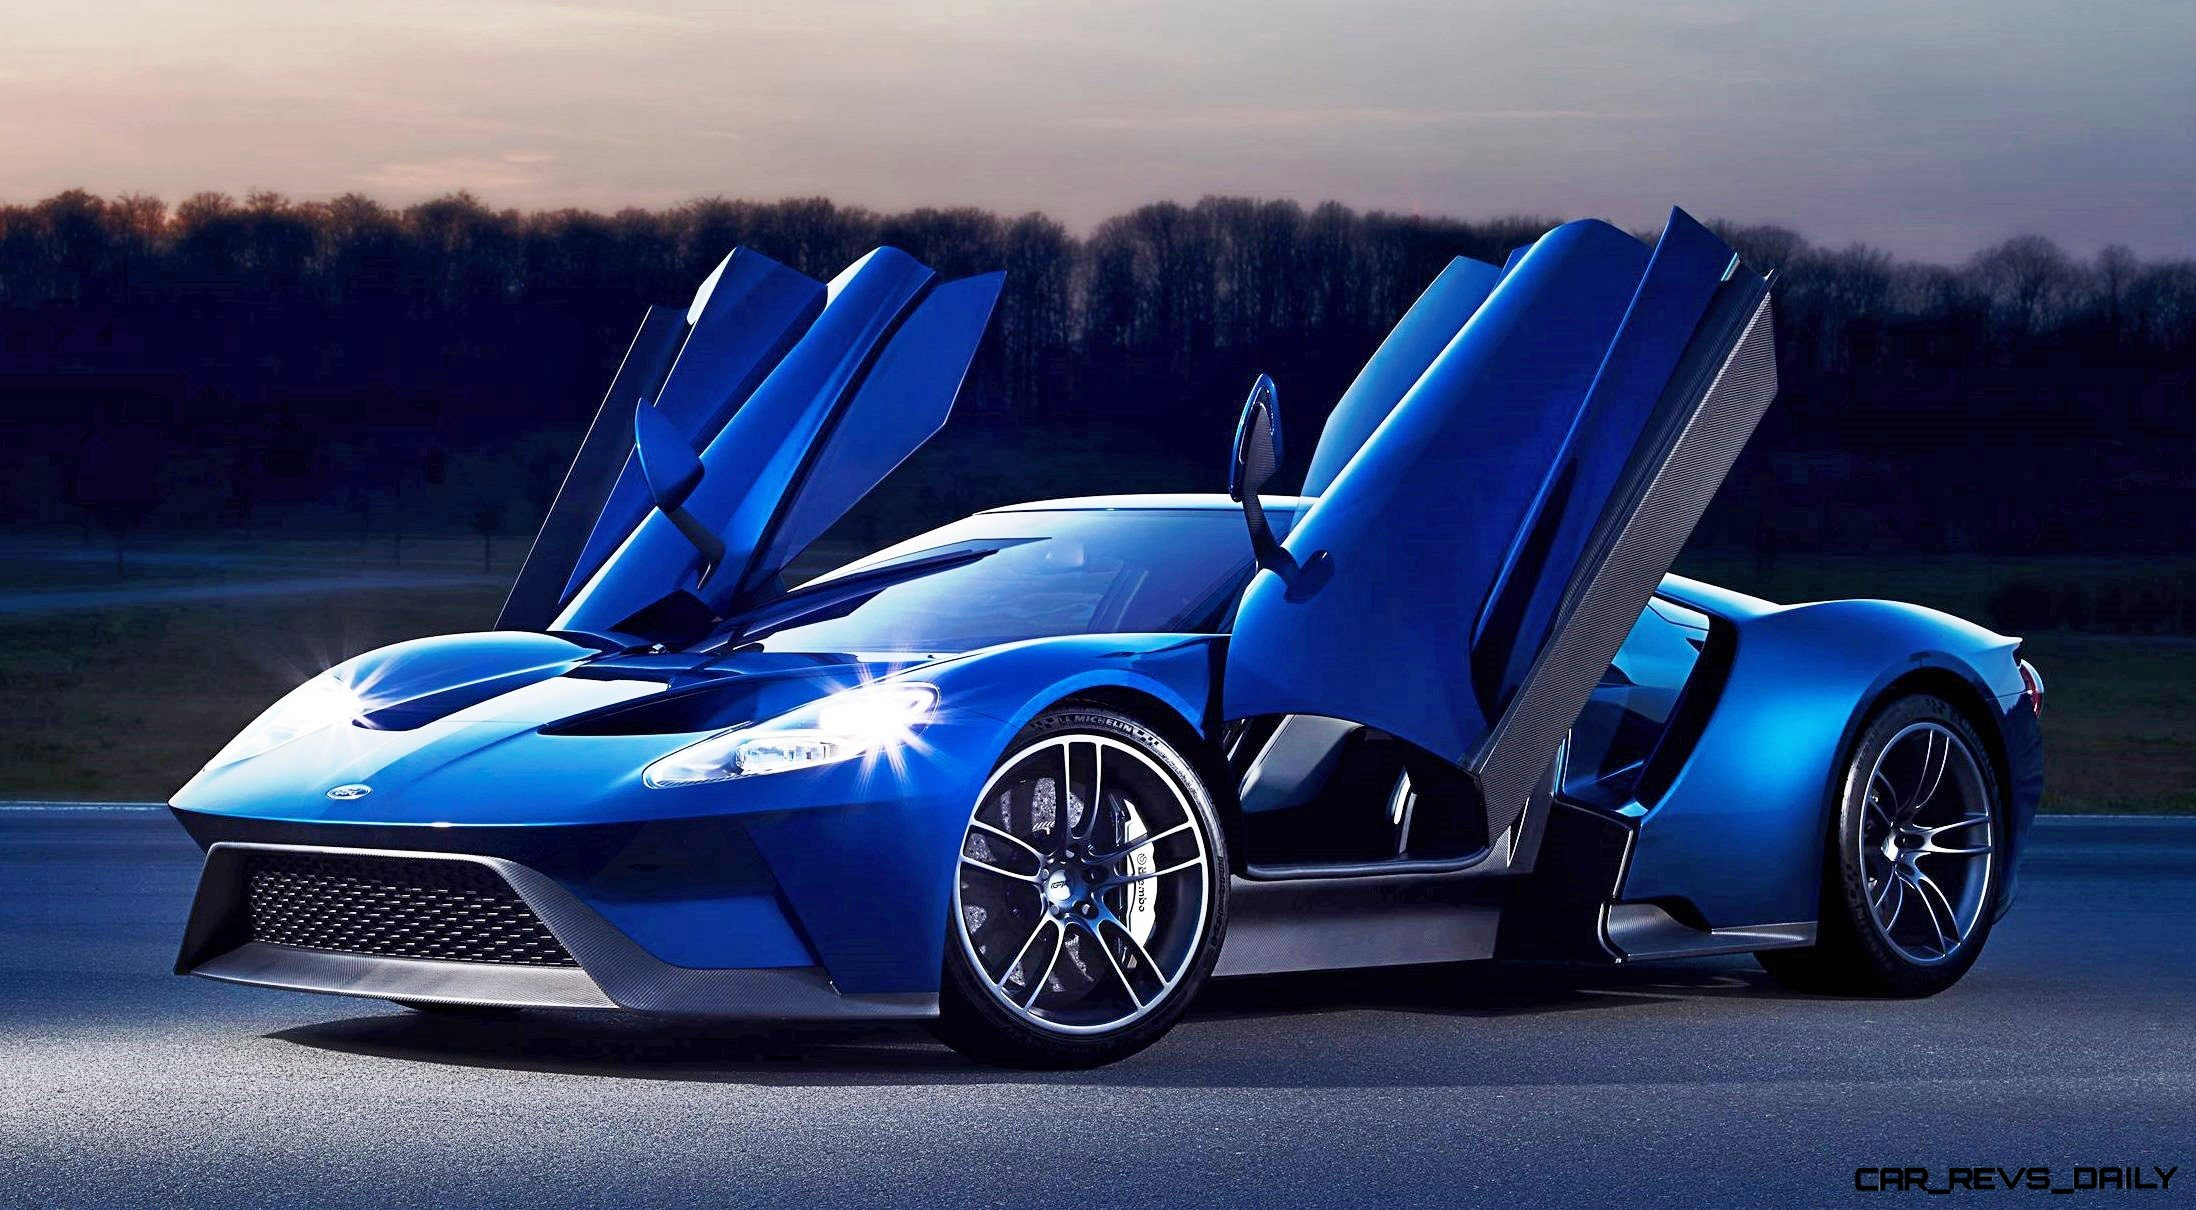 2017 Ford GT – Latest 200 Photos + Digital Colors Visualizer